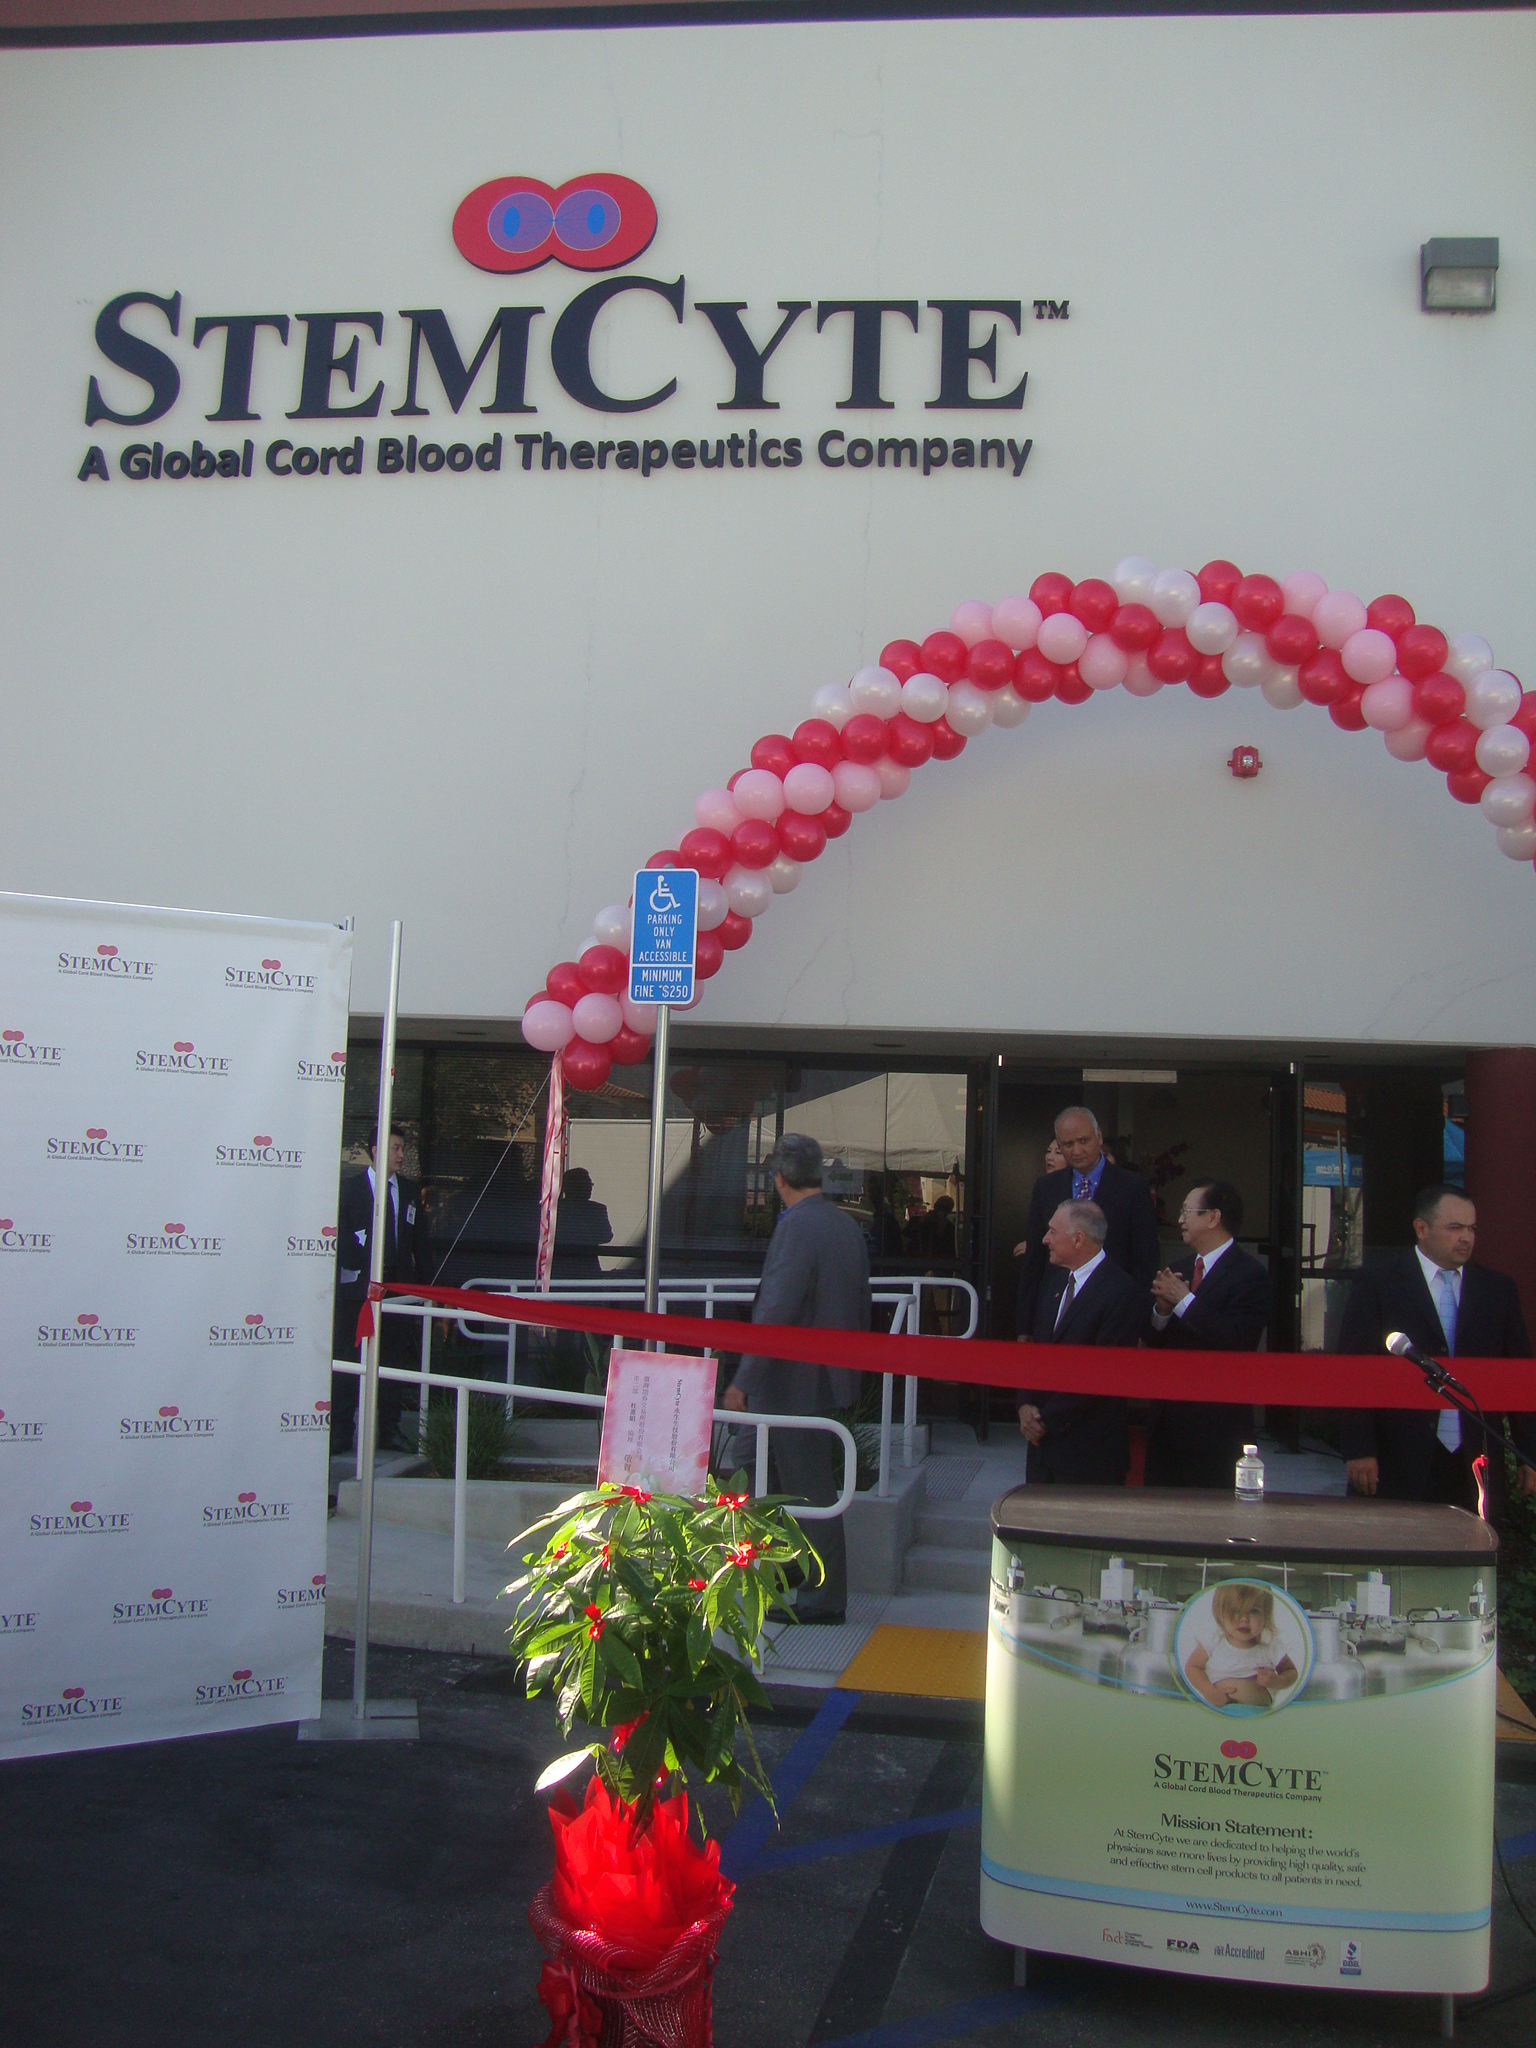 Ware Malcomb Announces Completion of StemCyte Facility